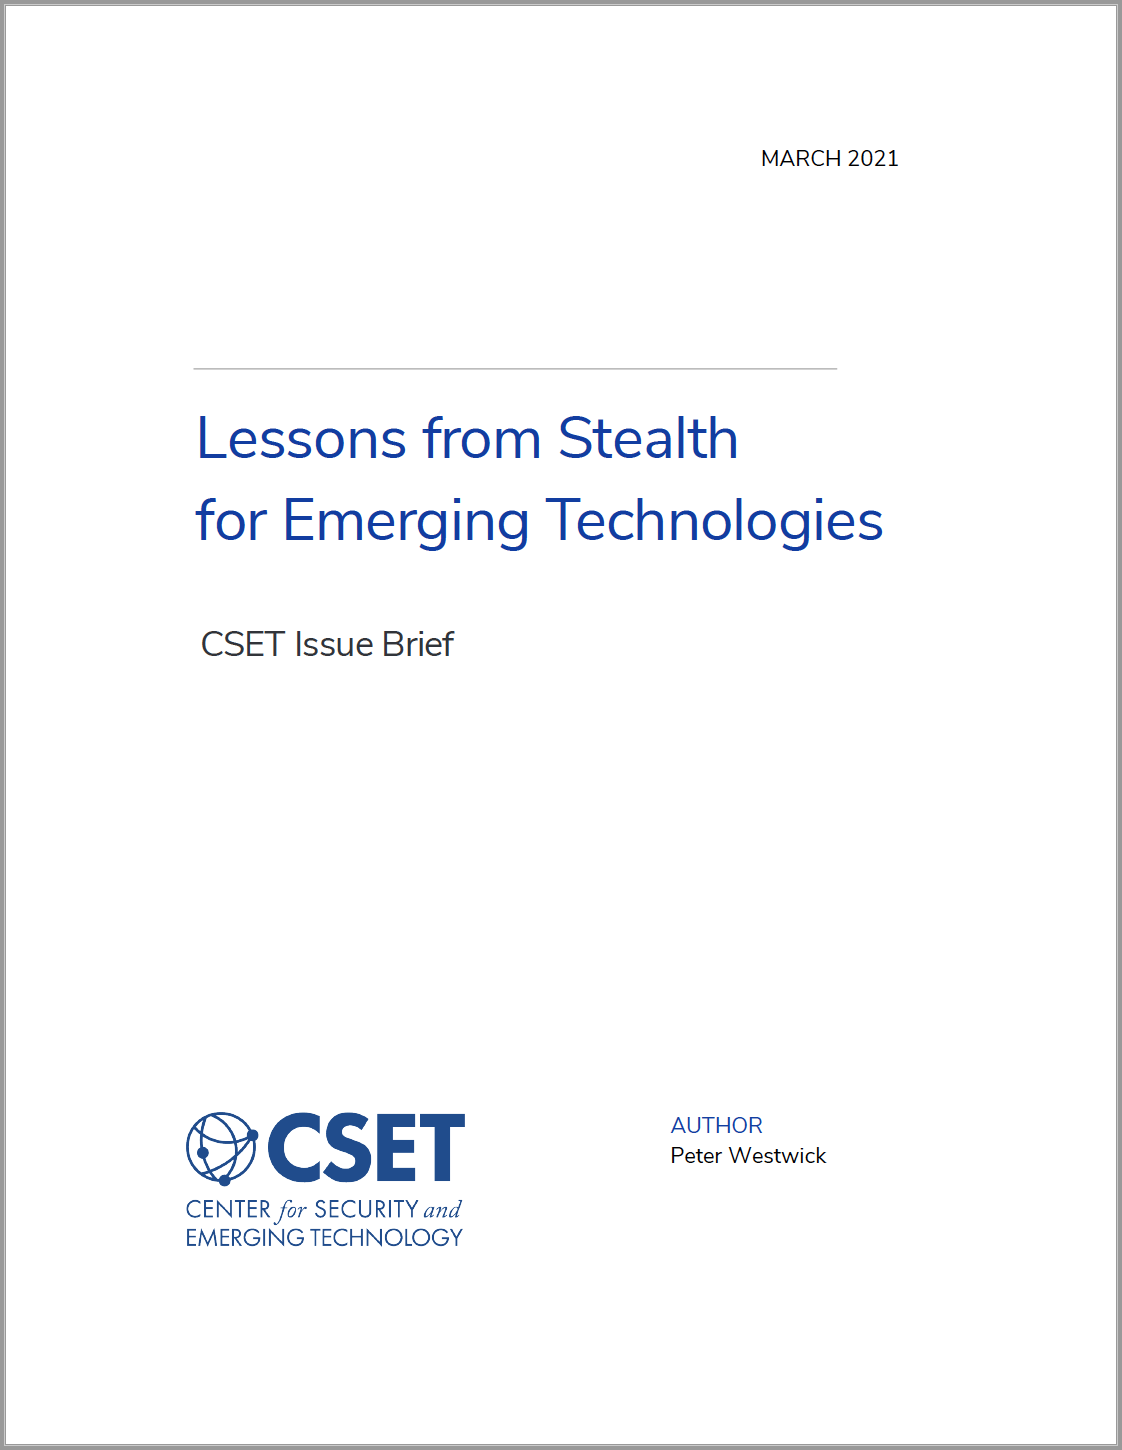 CSET Lessons from Stealth for Emerging Technologies Image